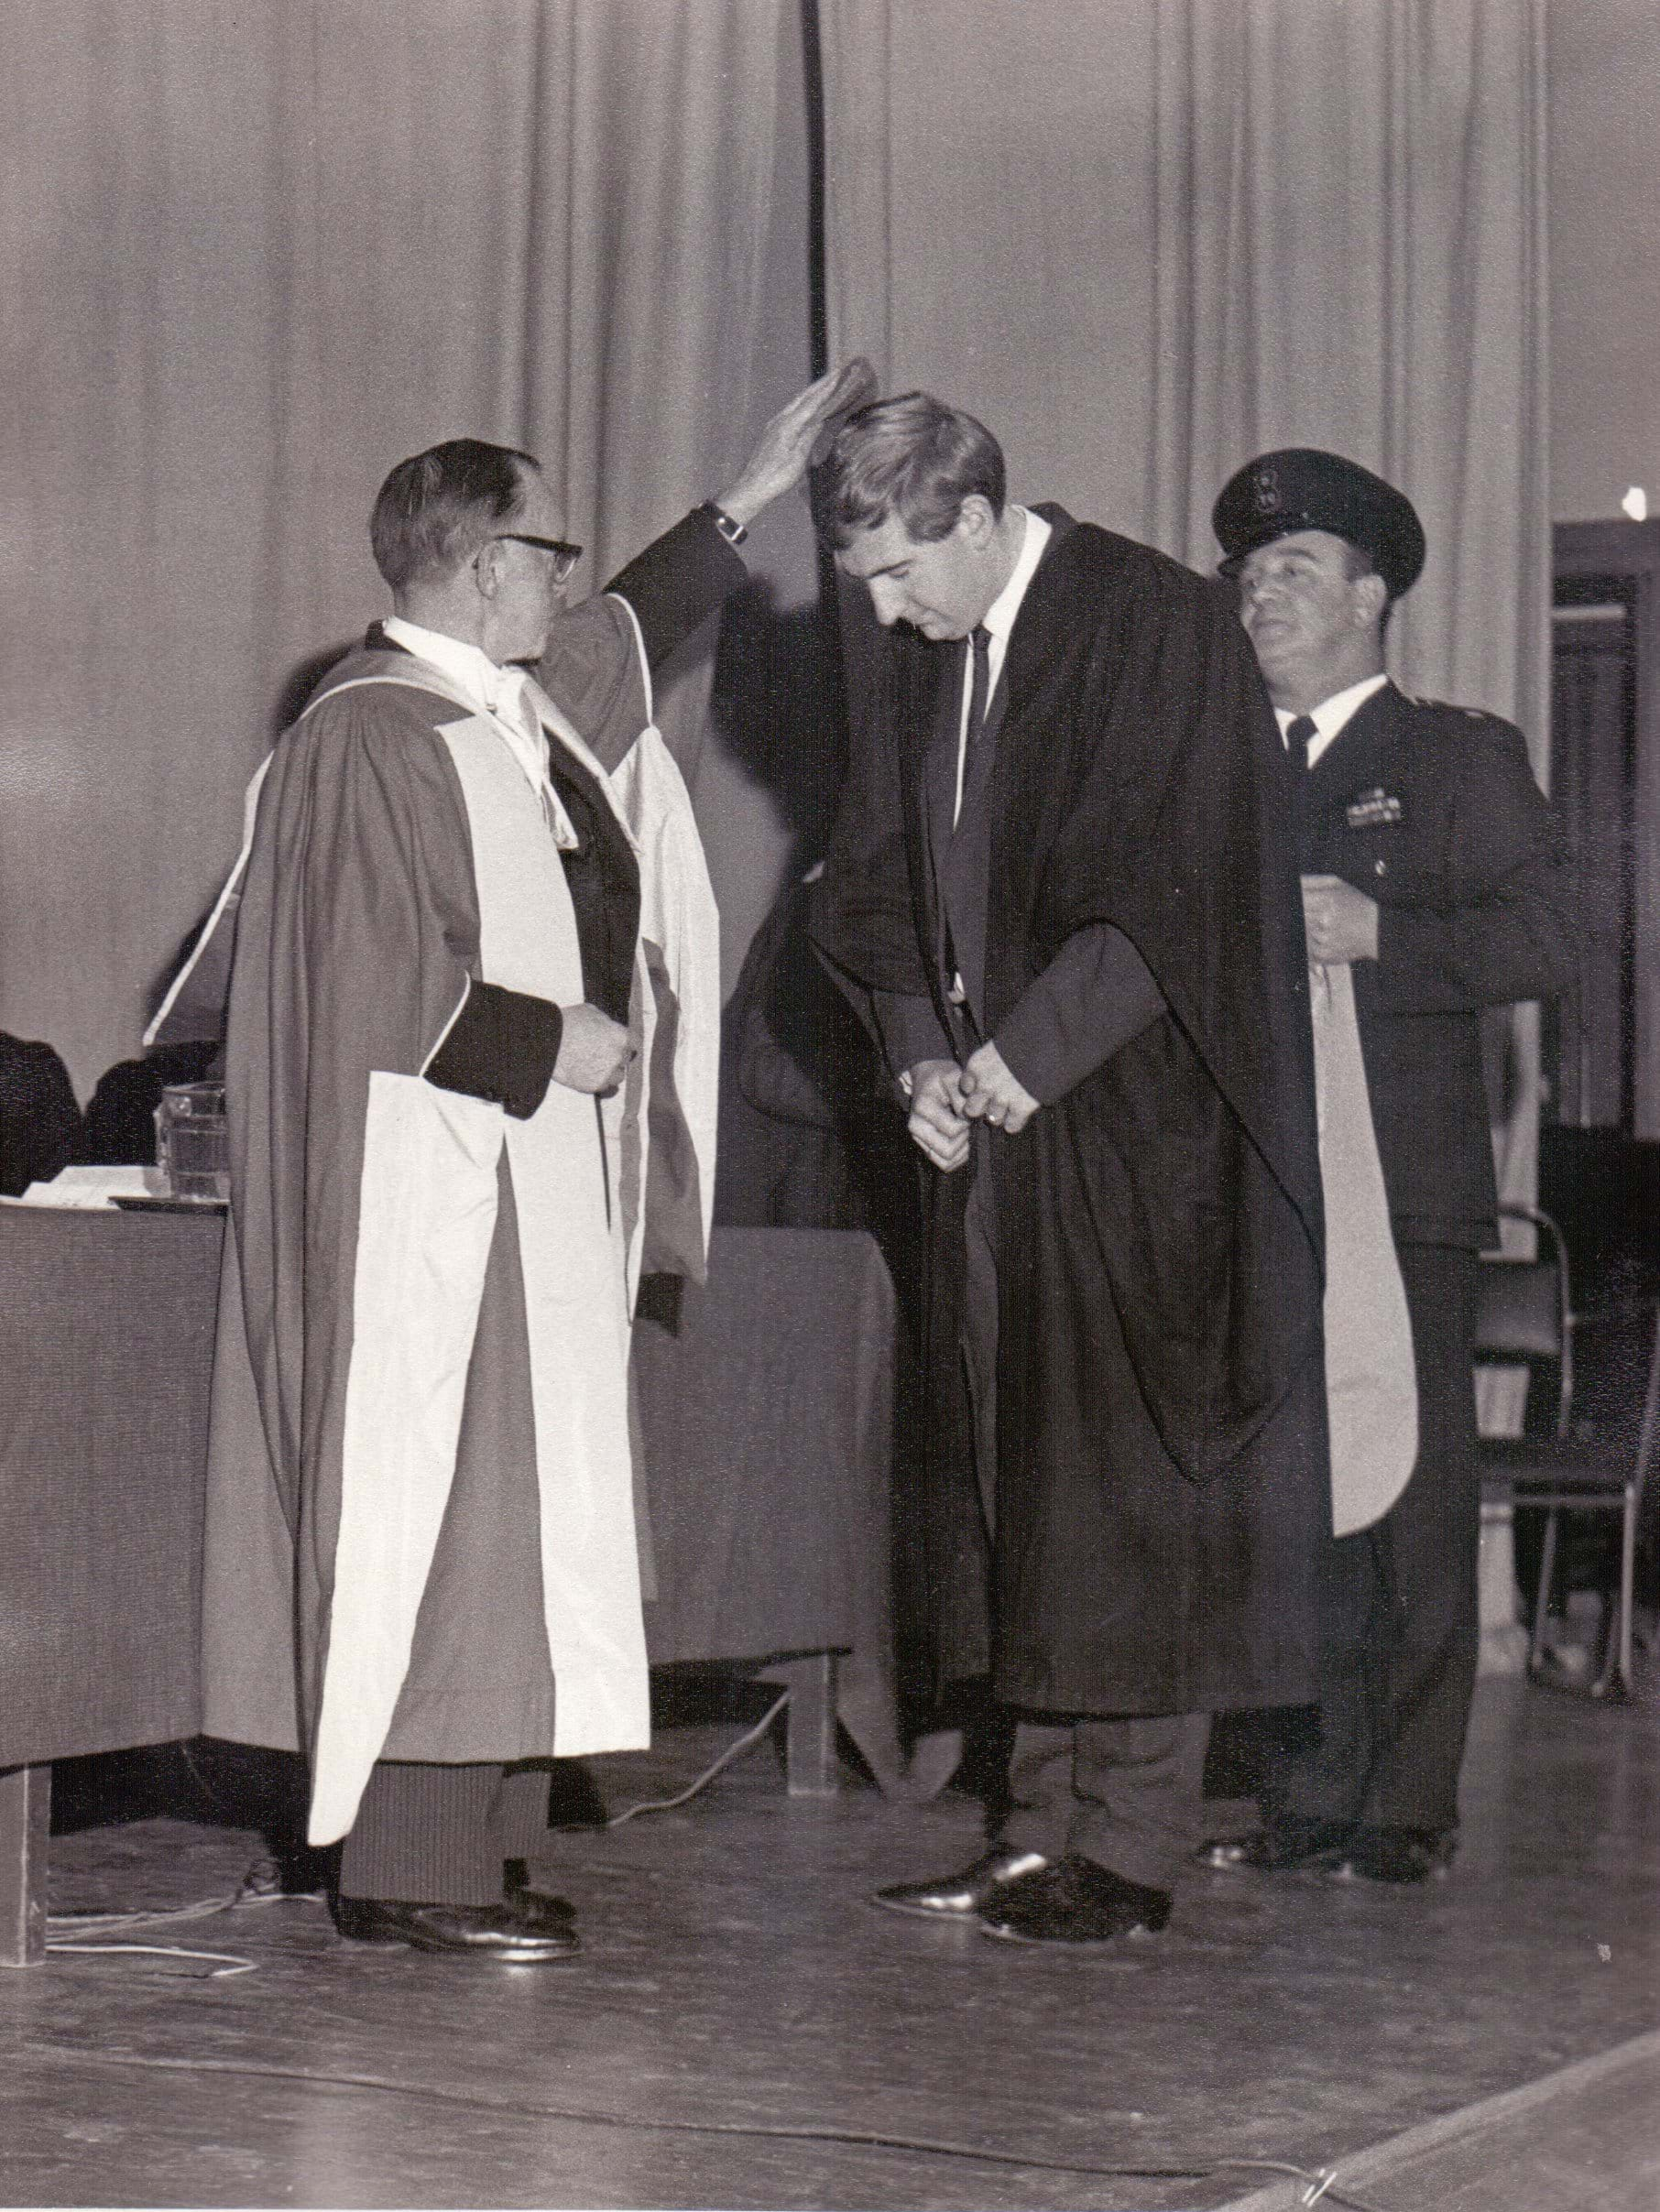 Dundee Technical College Graduation showing a Graduand being capped 1967